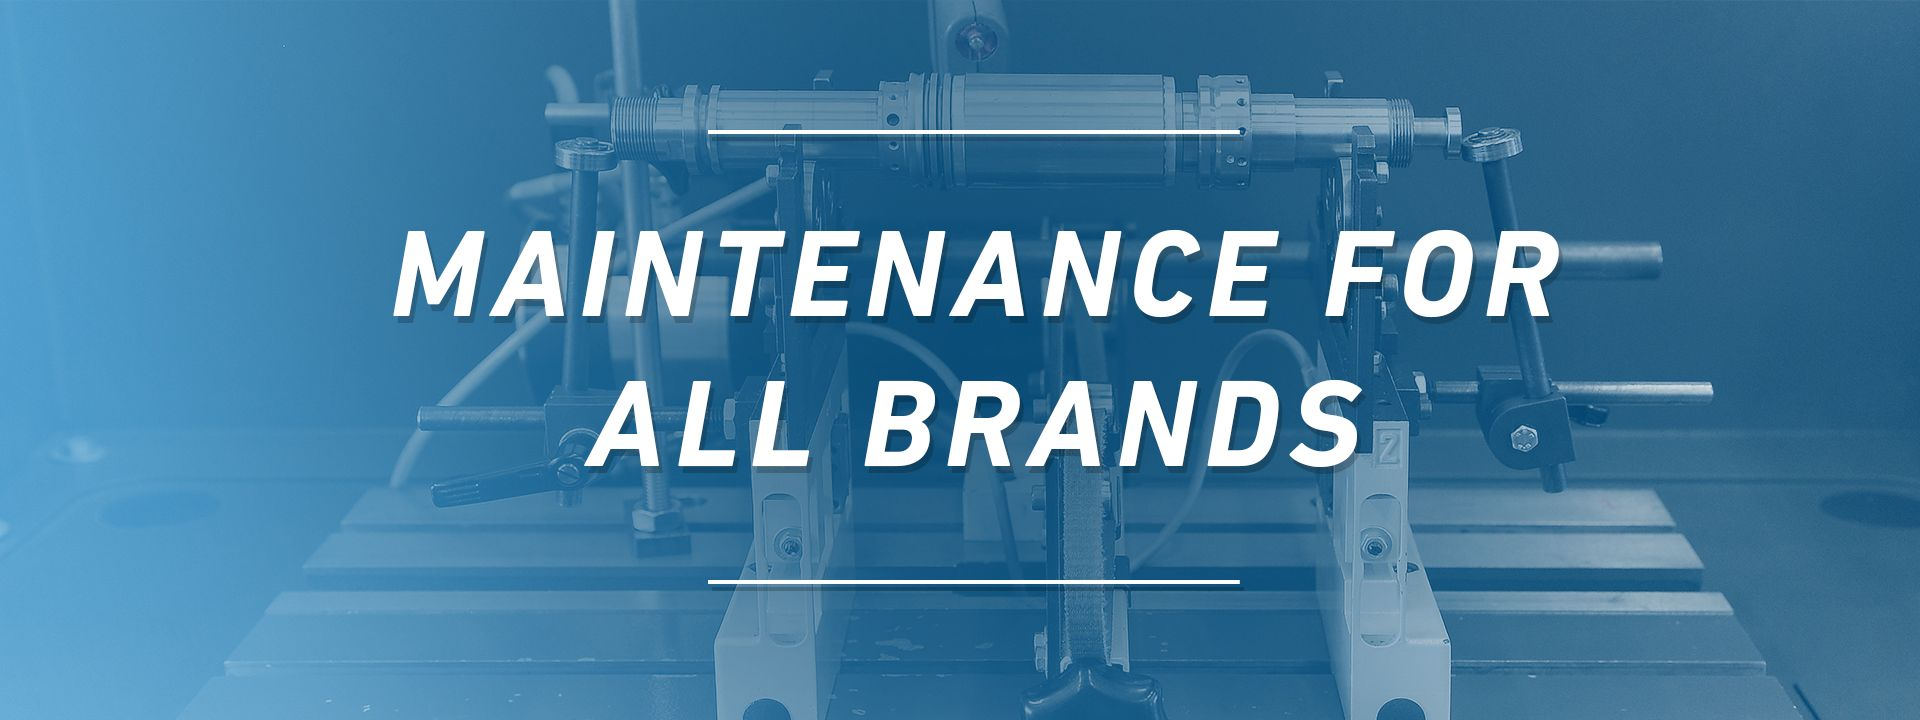 Precise France - Maintenance All Brands